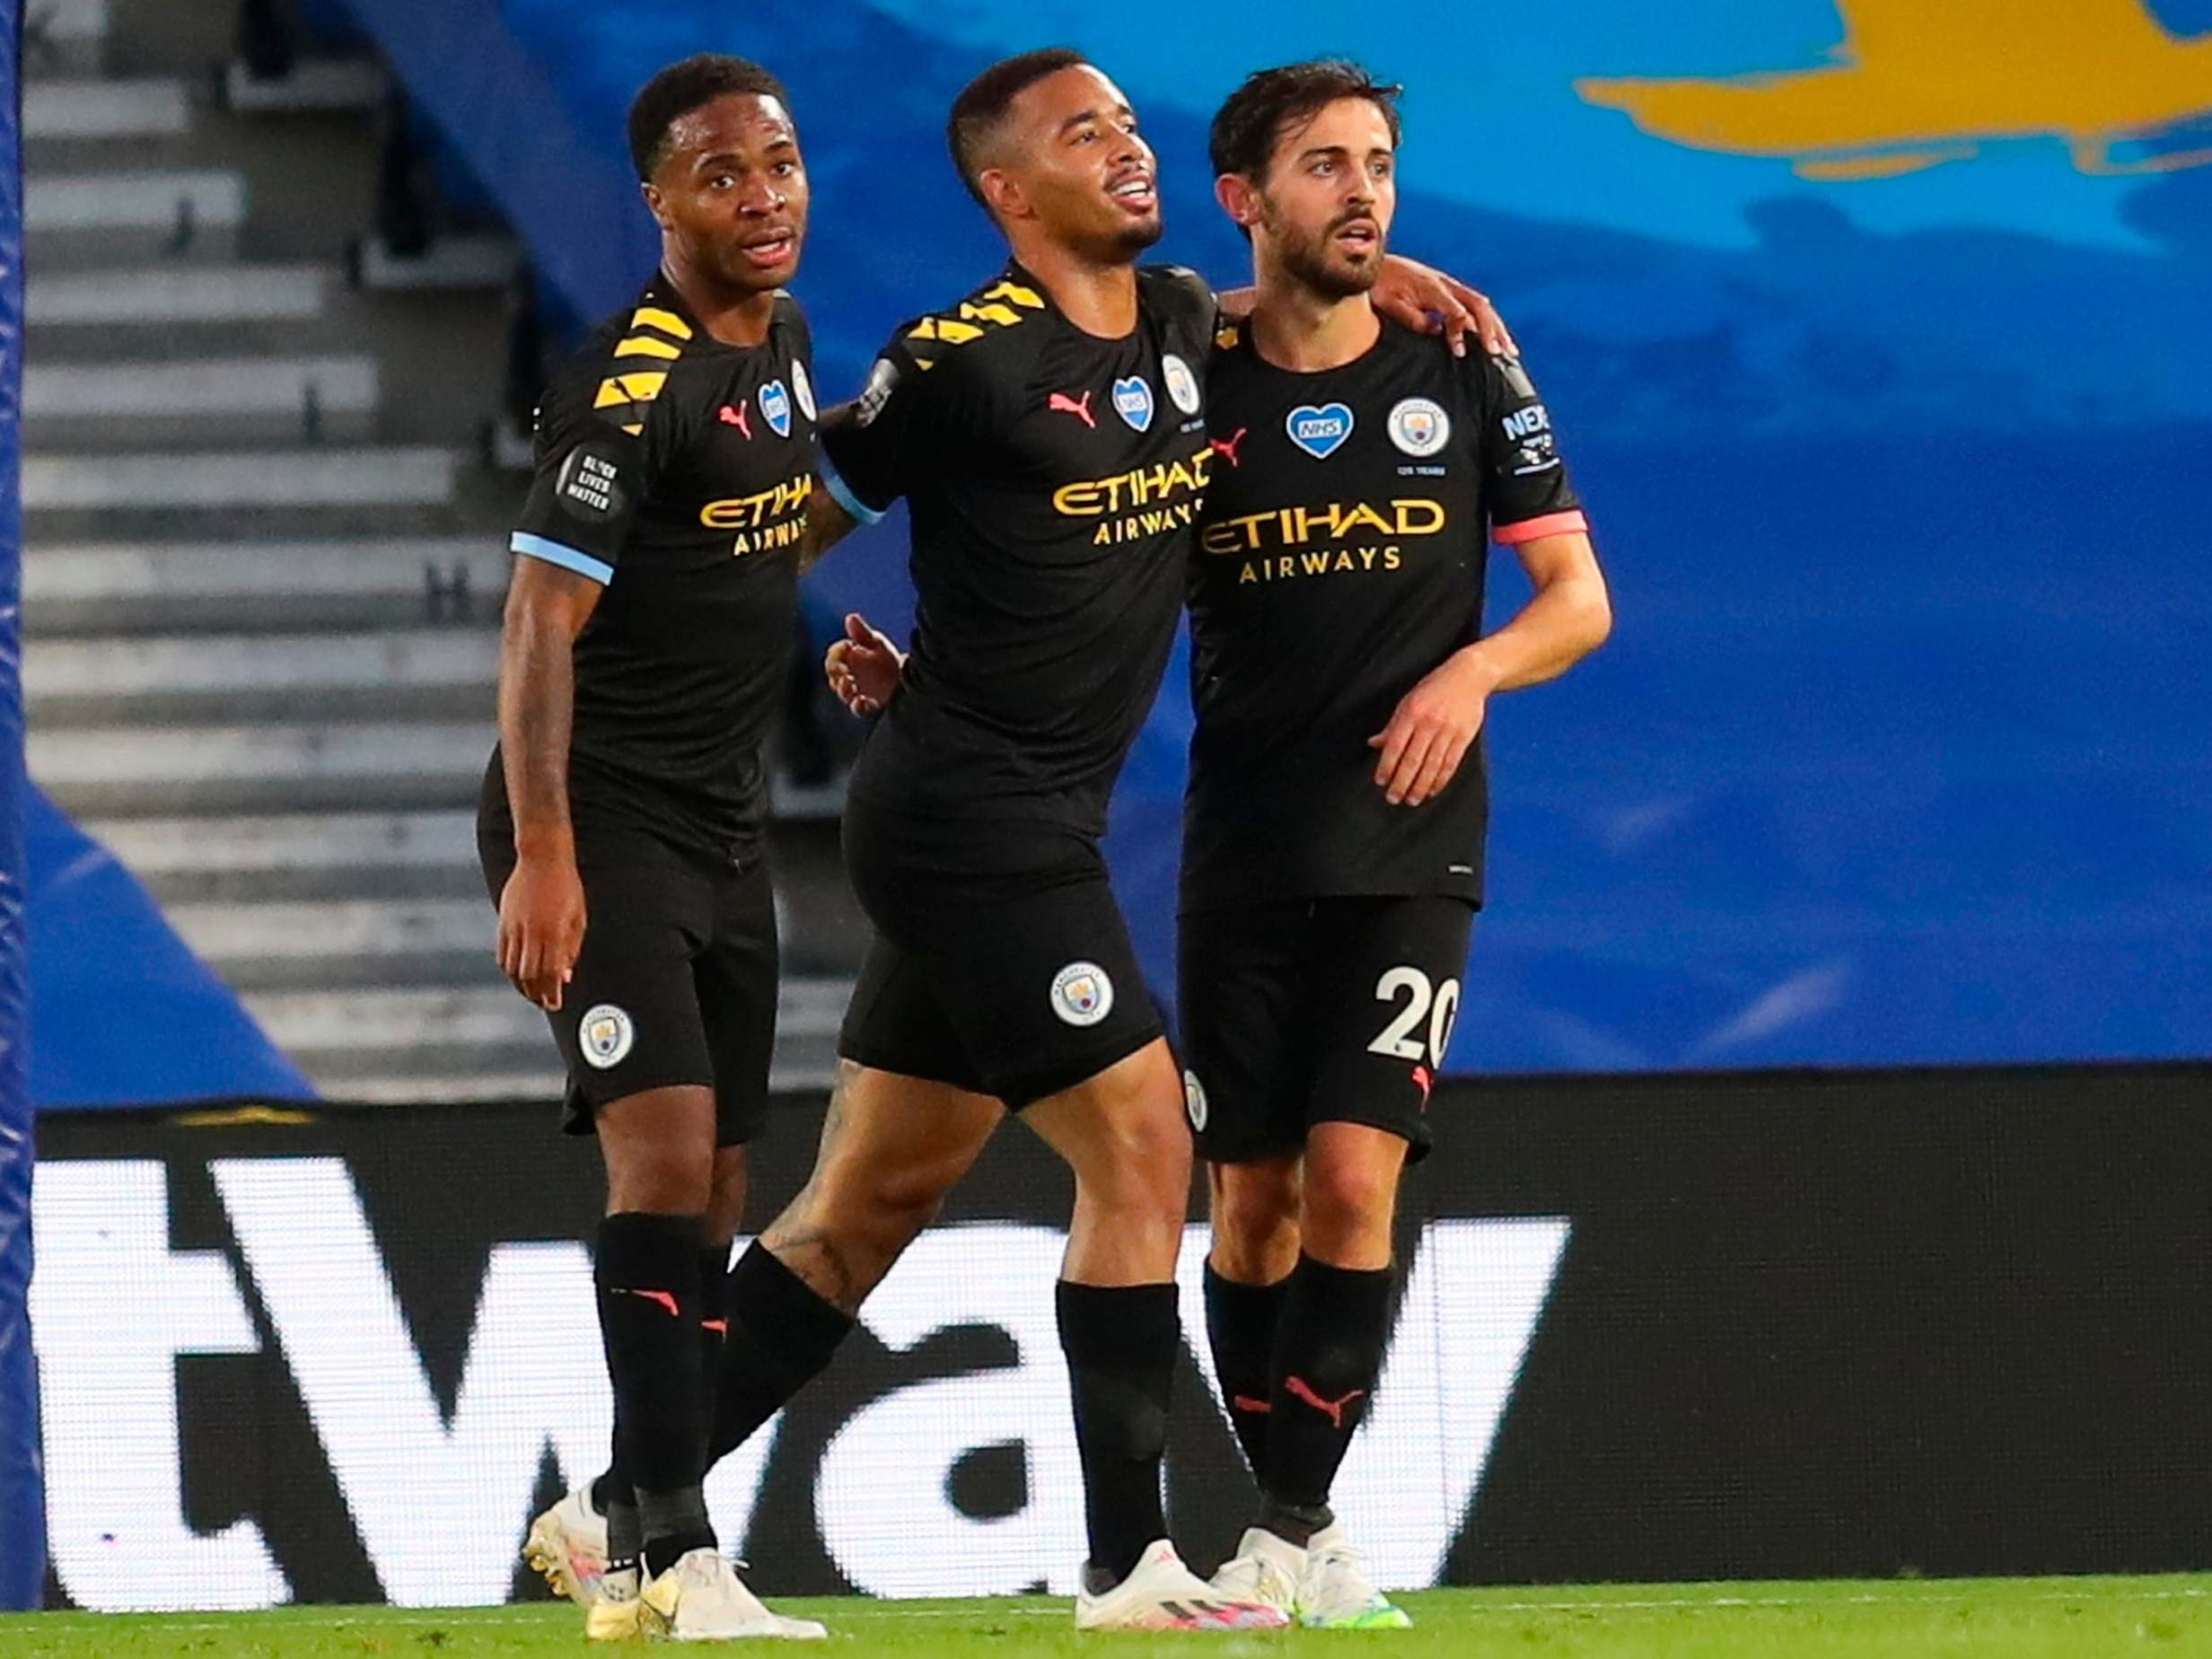 Brighton vs Man City LIVE: Result and reaction from Premier League fixture tonight thumbnail